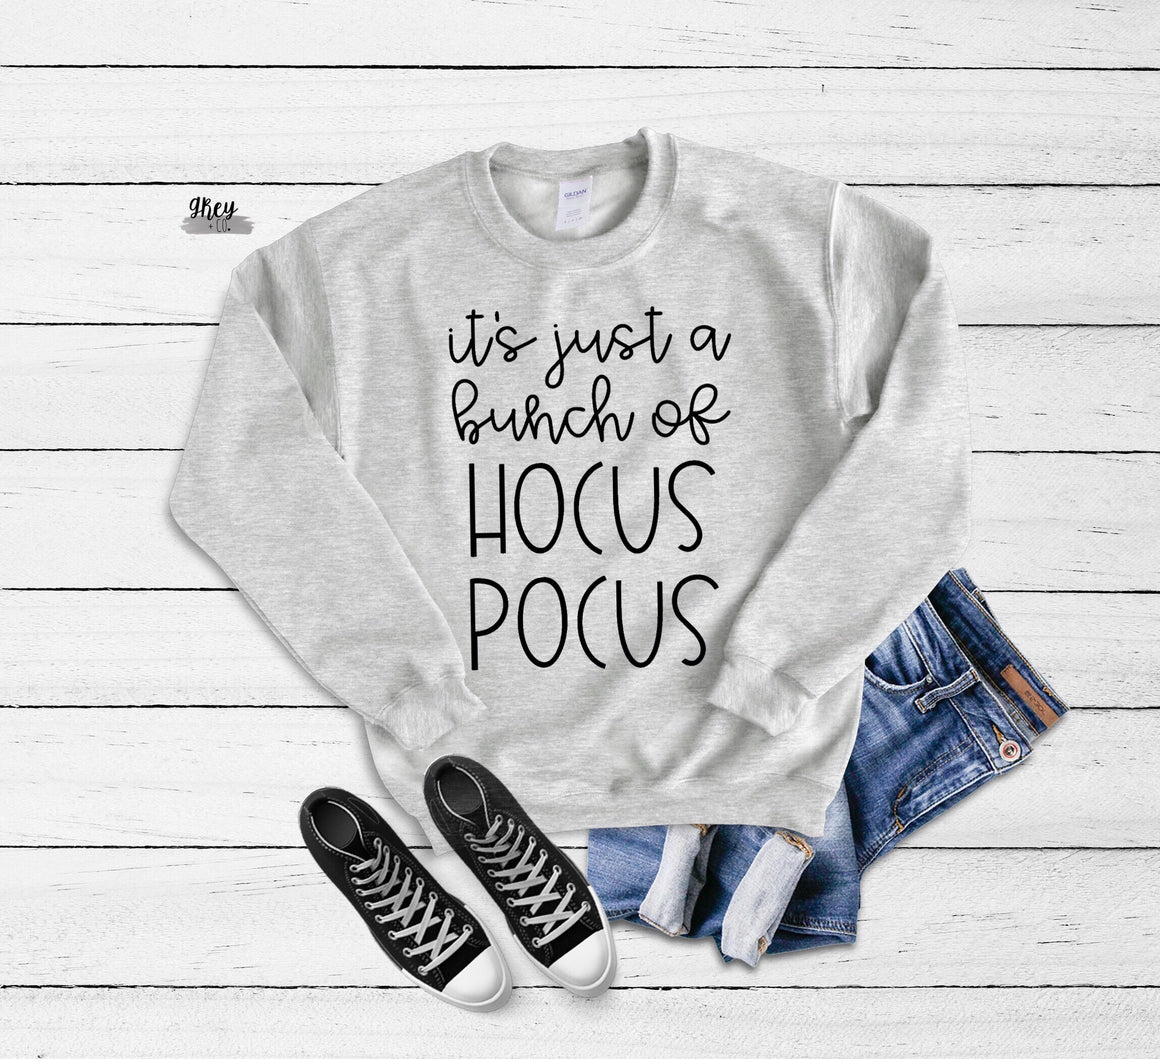 Hocus pocus sweatshirt {Grey + co}